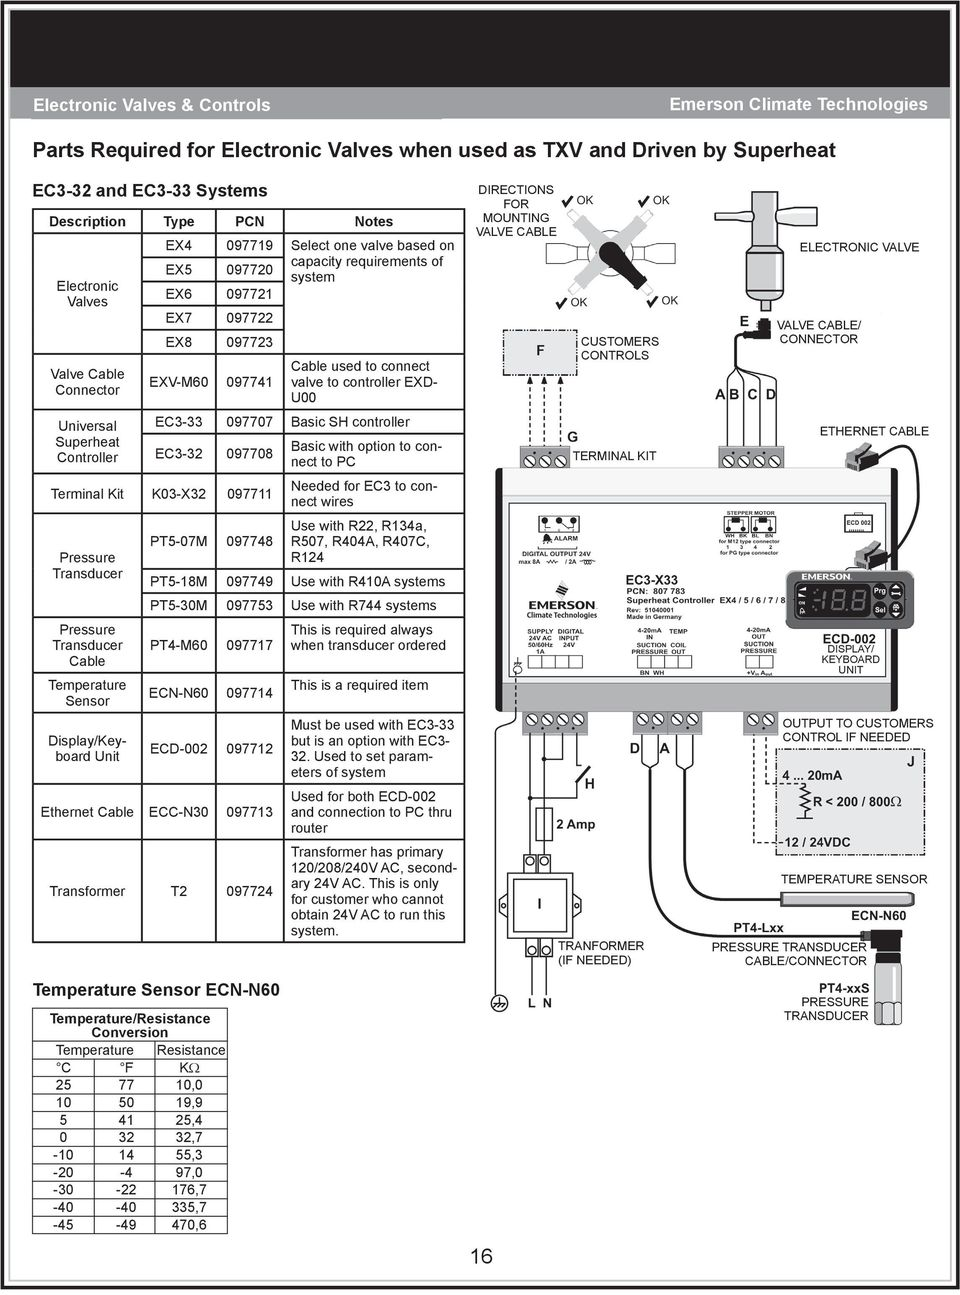 Technical Help Guide Pdf Wiring Diagram Air Pressor Hvac Superheat And Connector U00 Universal Ec3 33 097707 Basic Sh Controller With Option To Connect